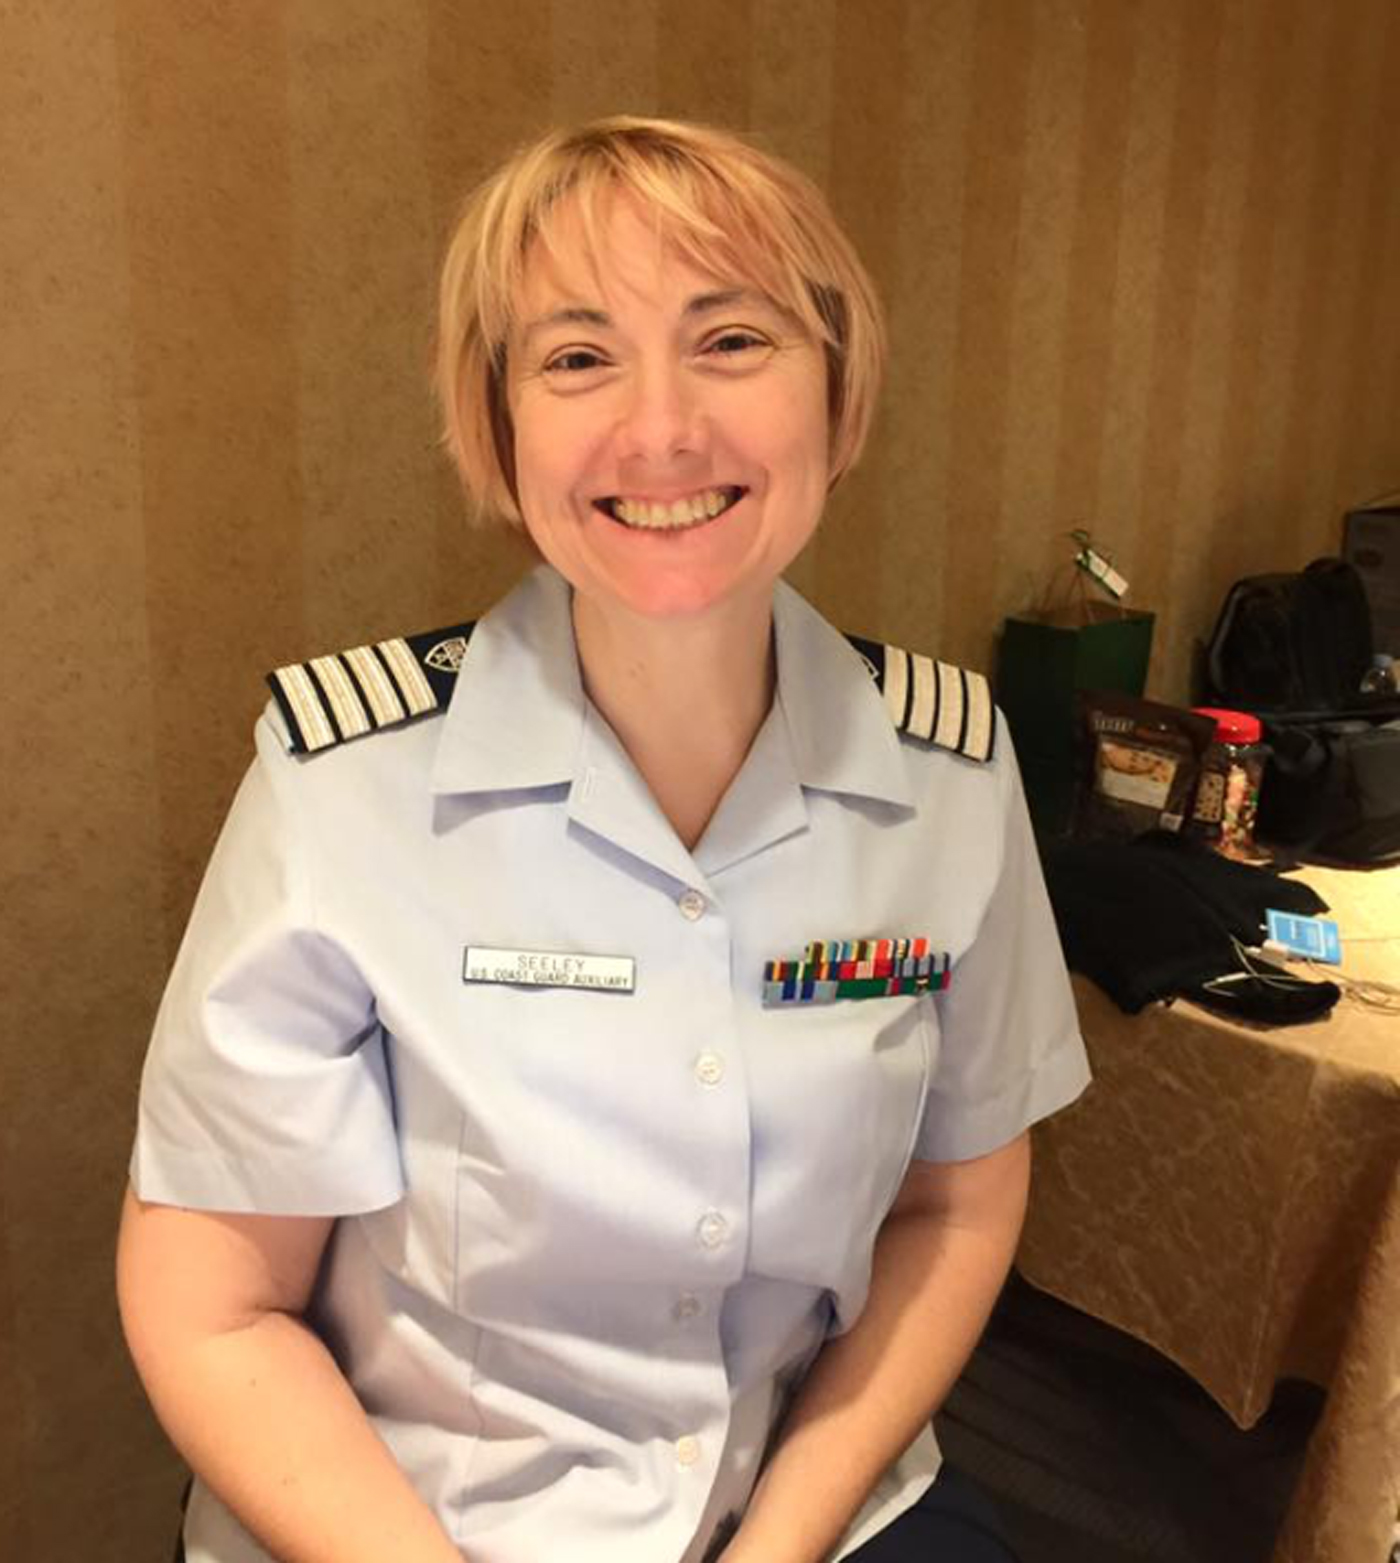 Besides working for the National Weather Service, Amy Seeley was a district captain with the U.S. Coast Guard Auxiliary.